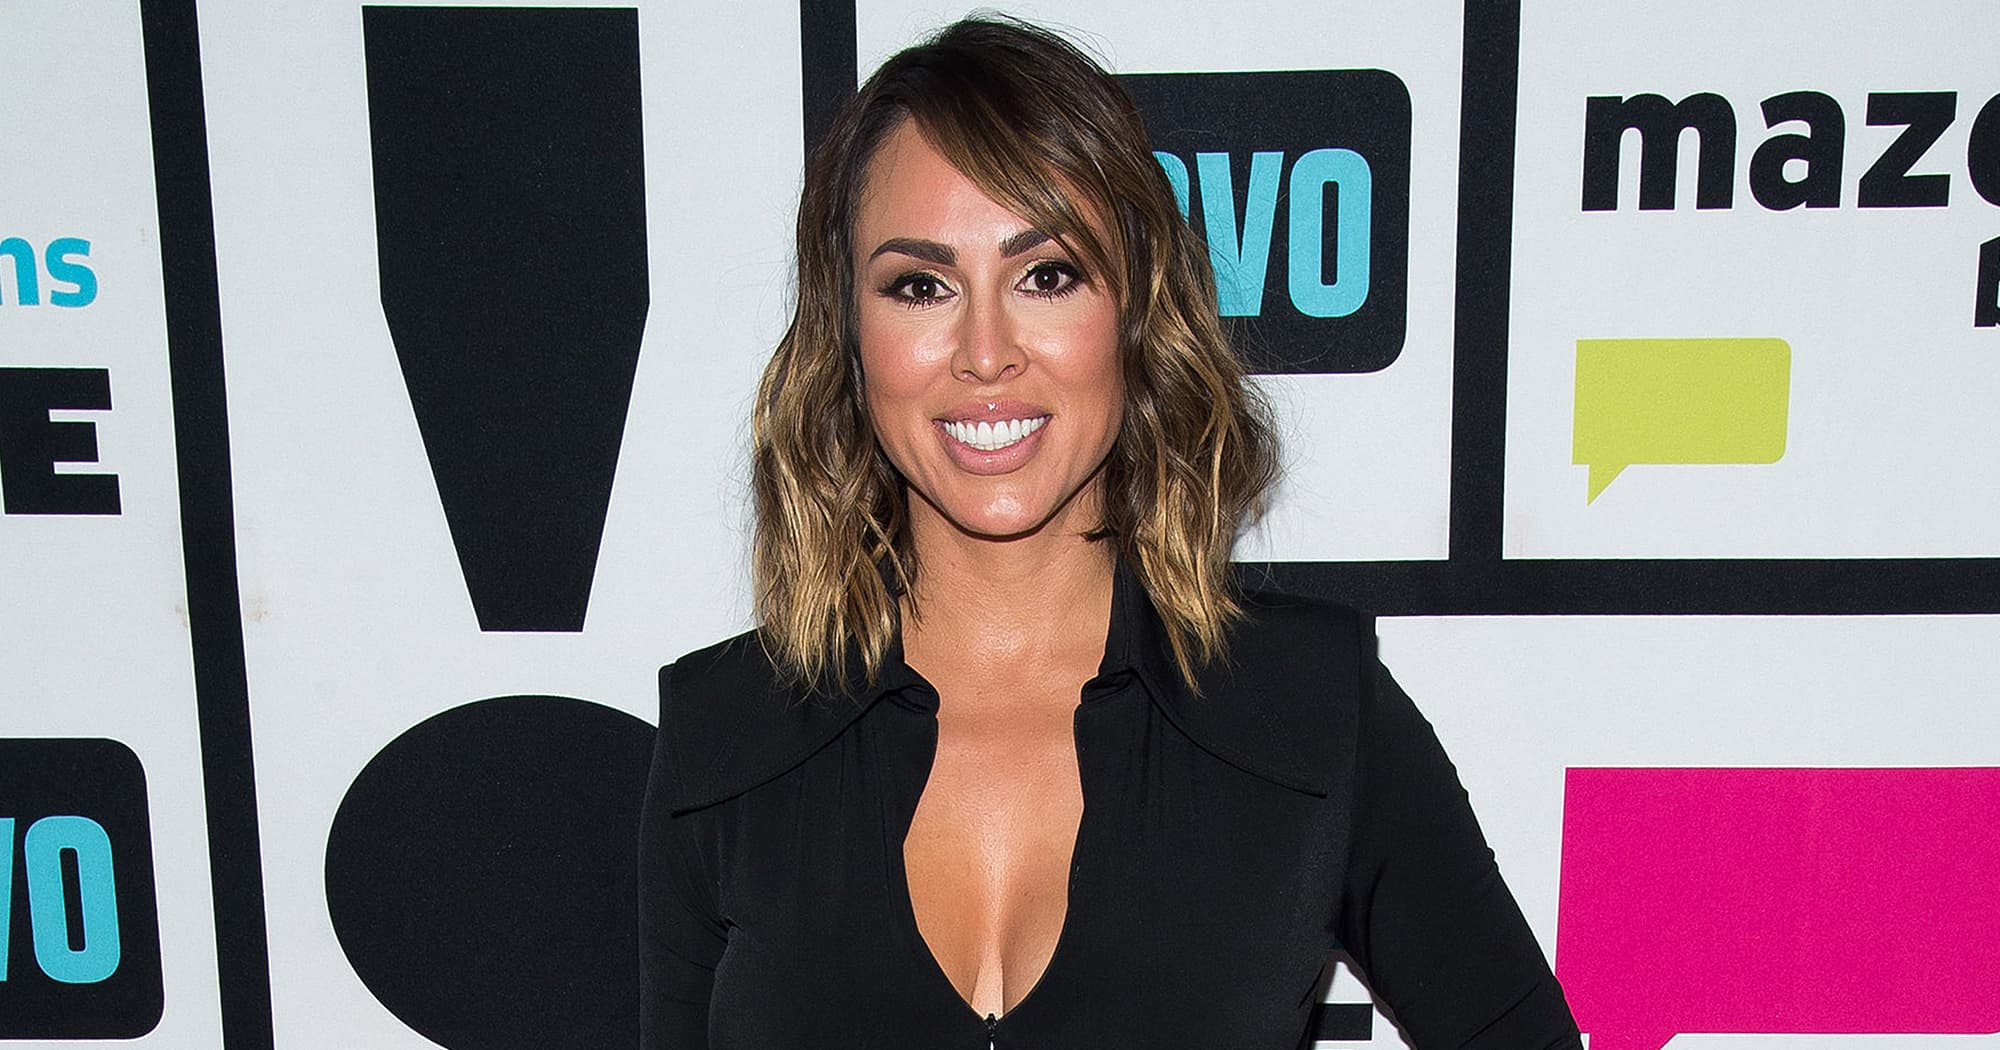 Kelly Dodd Before And After Plastic Surgery photo - 1